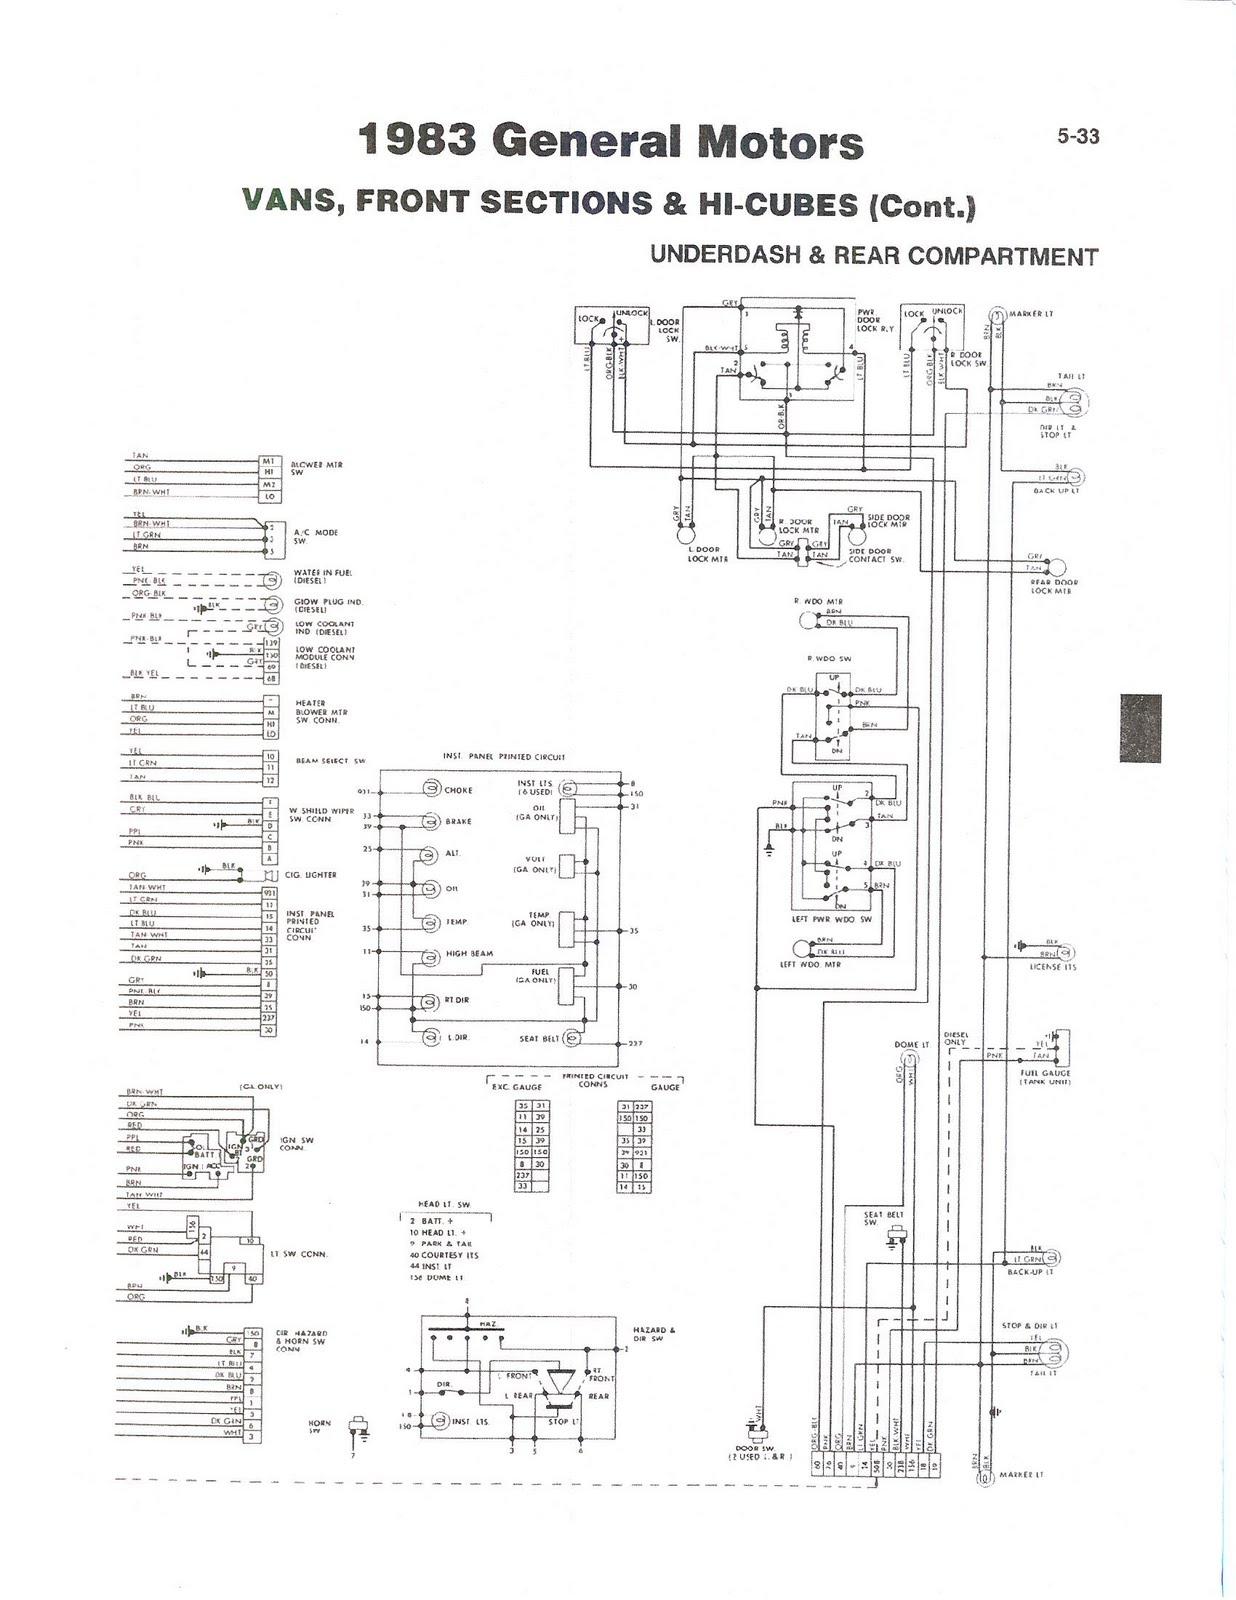 1996 Chevy P30 Wiring Diagram - Wiring Diagrams on